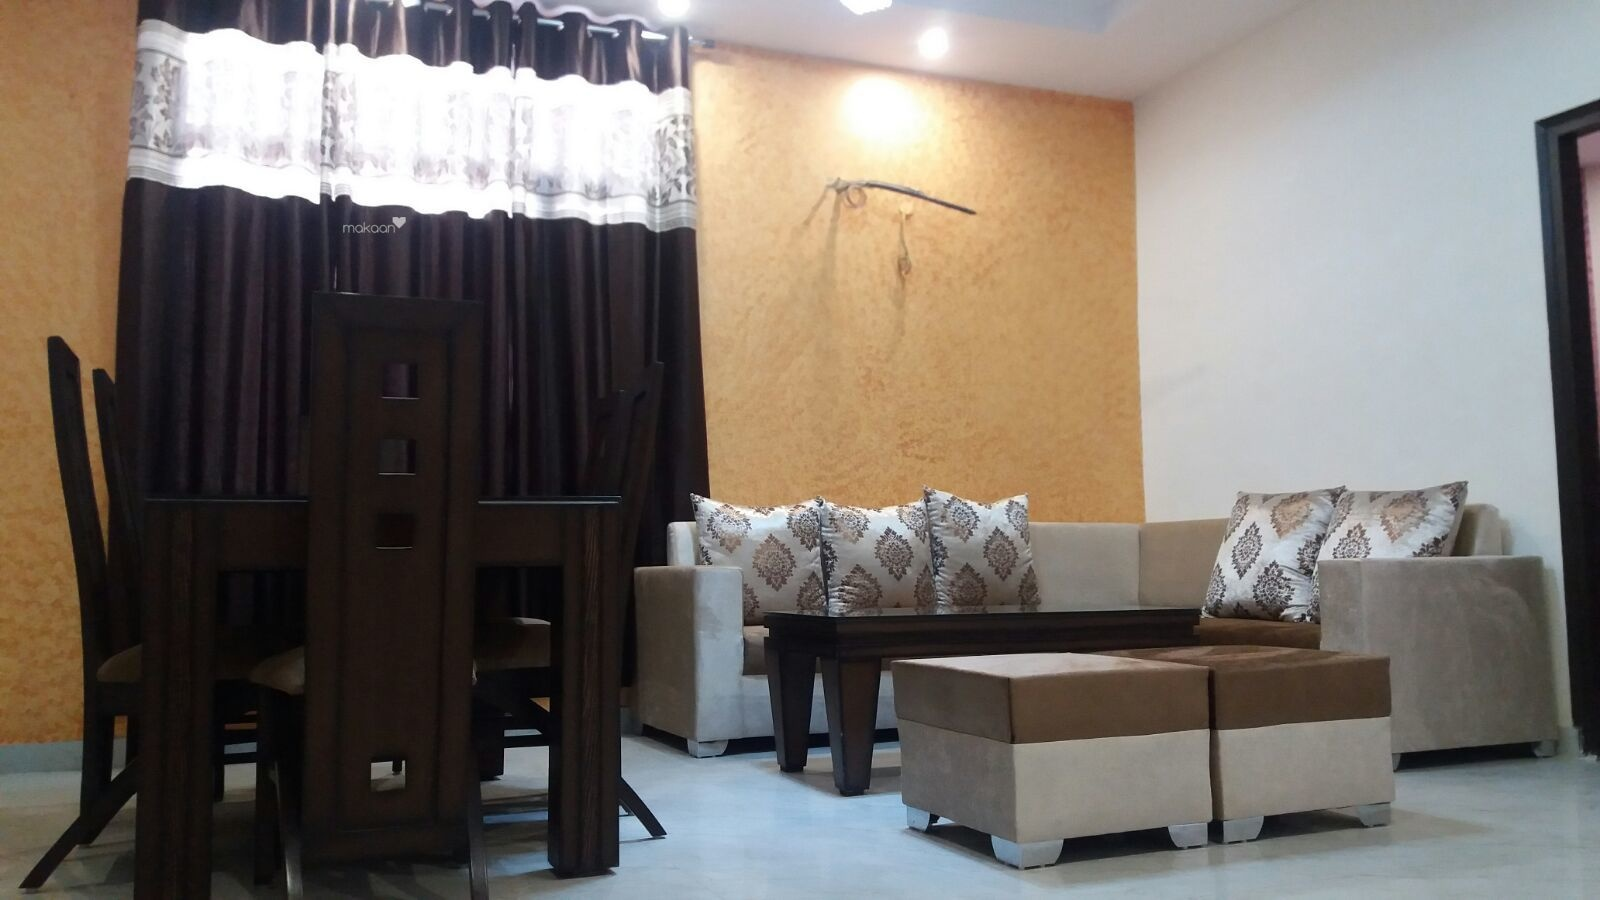 1550 sq ft 3BHK 3BHK+3T (1,550 sq ft) + Servant Room Property By Bliss Builders Promoters In Project, Sector 20 Panchkula